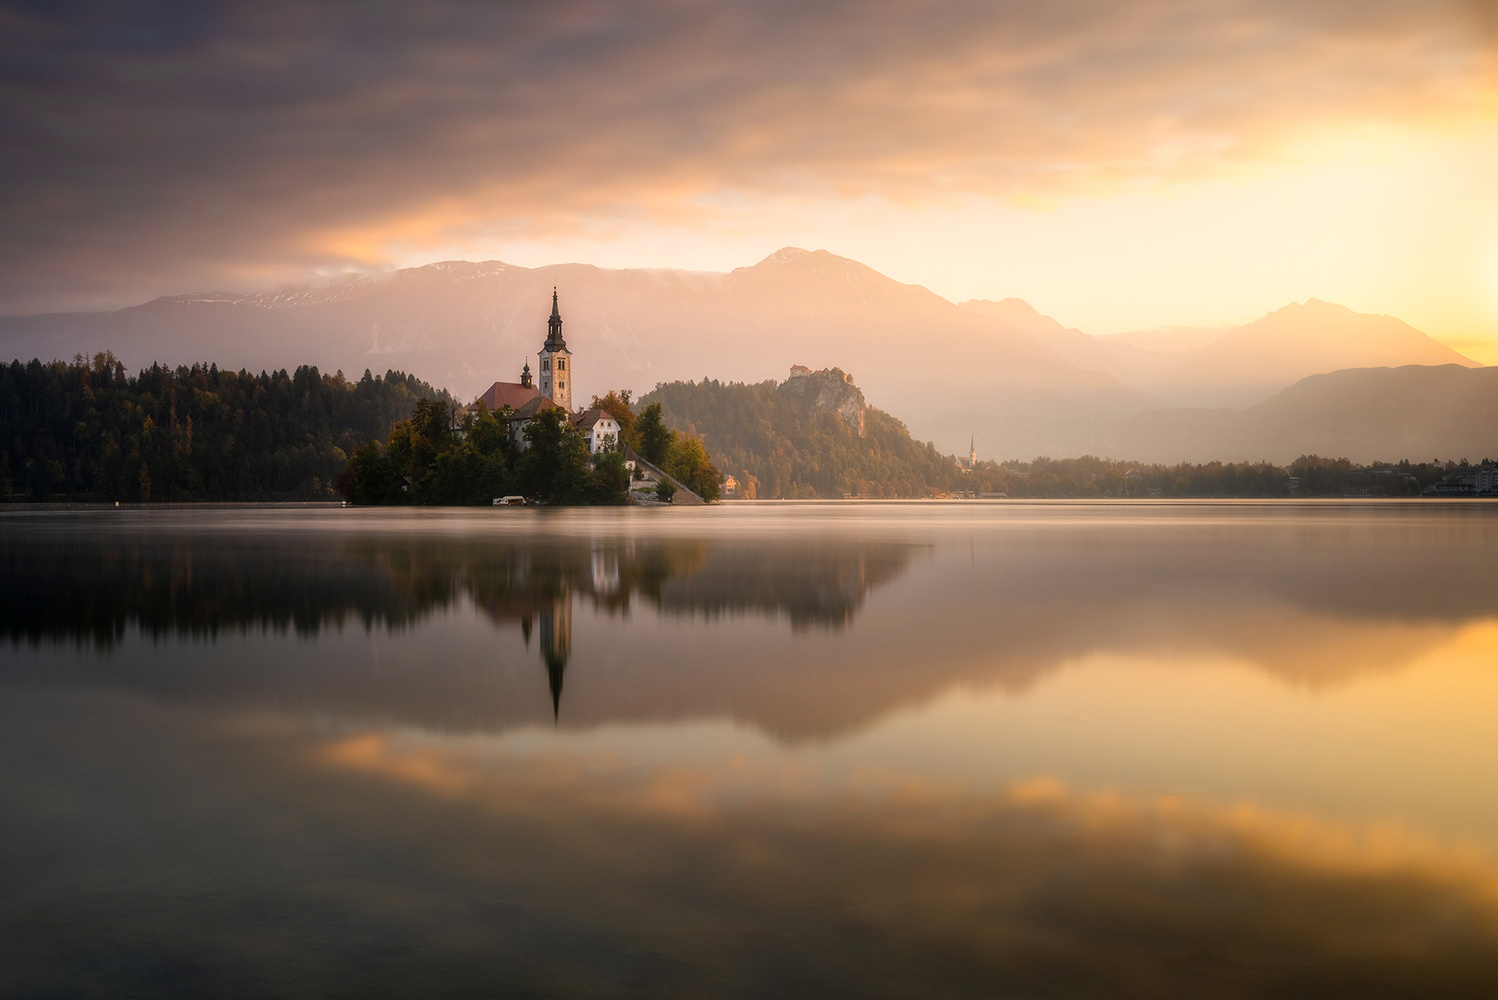 Morning in Bled by Philip Slotte